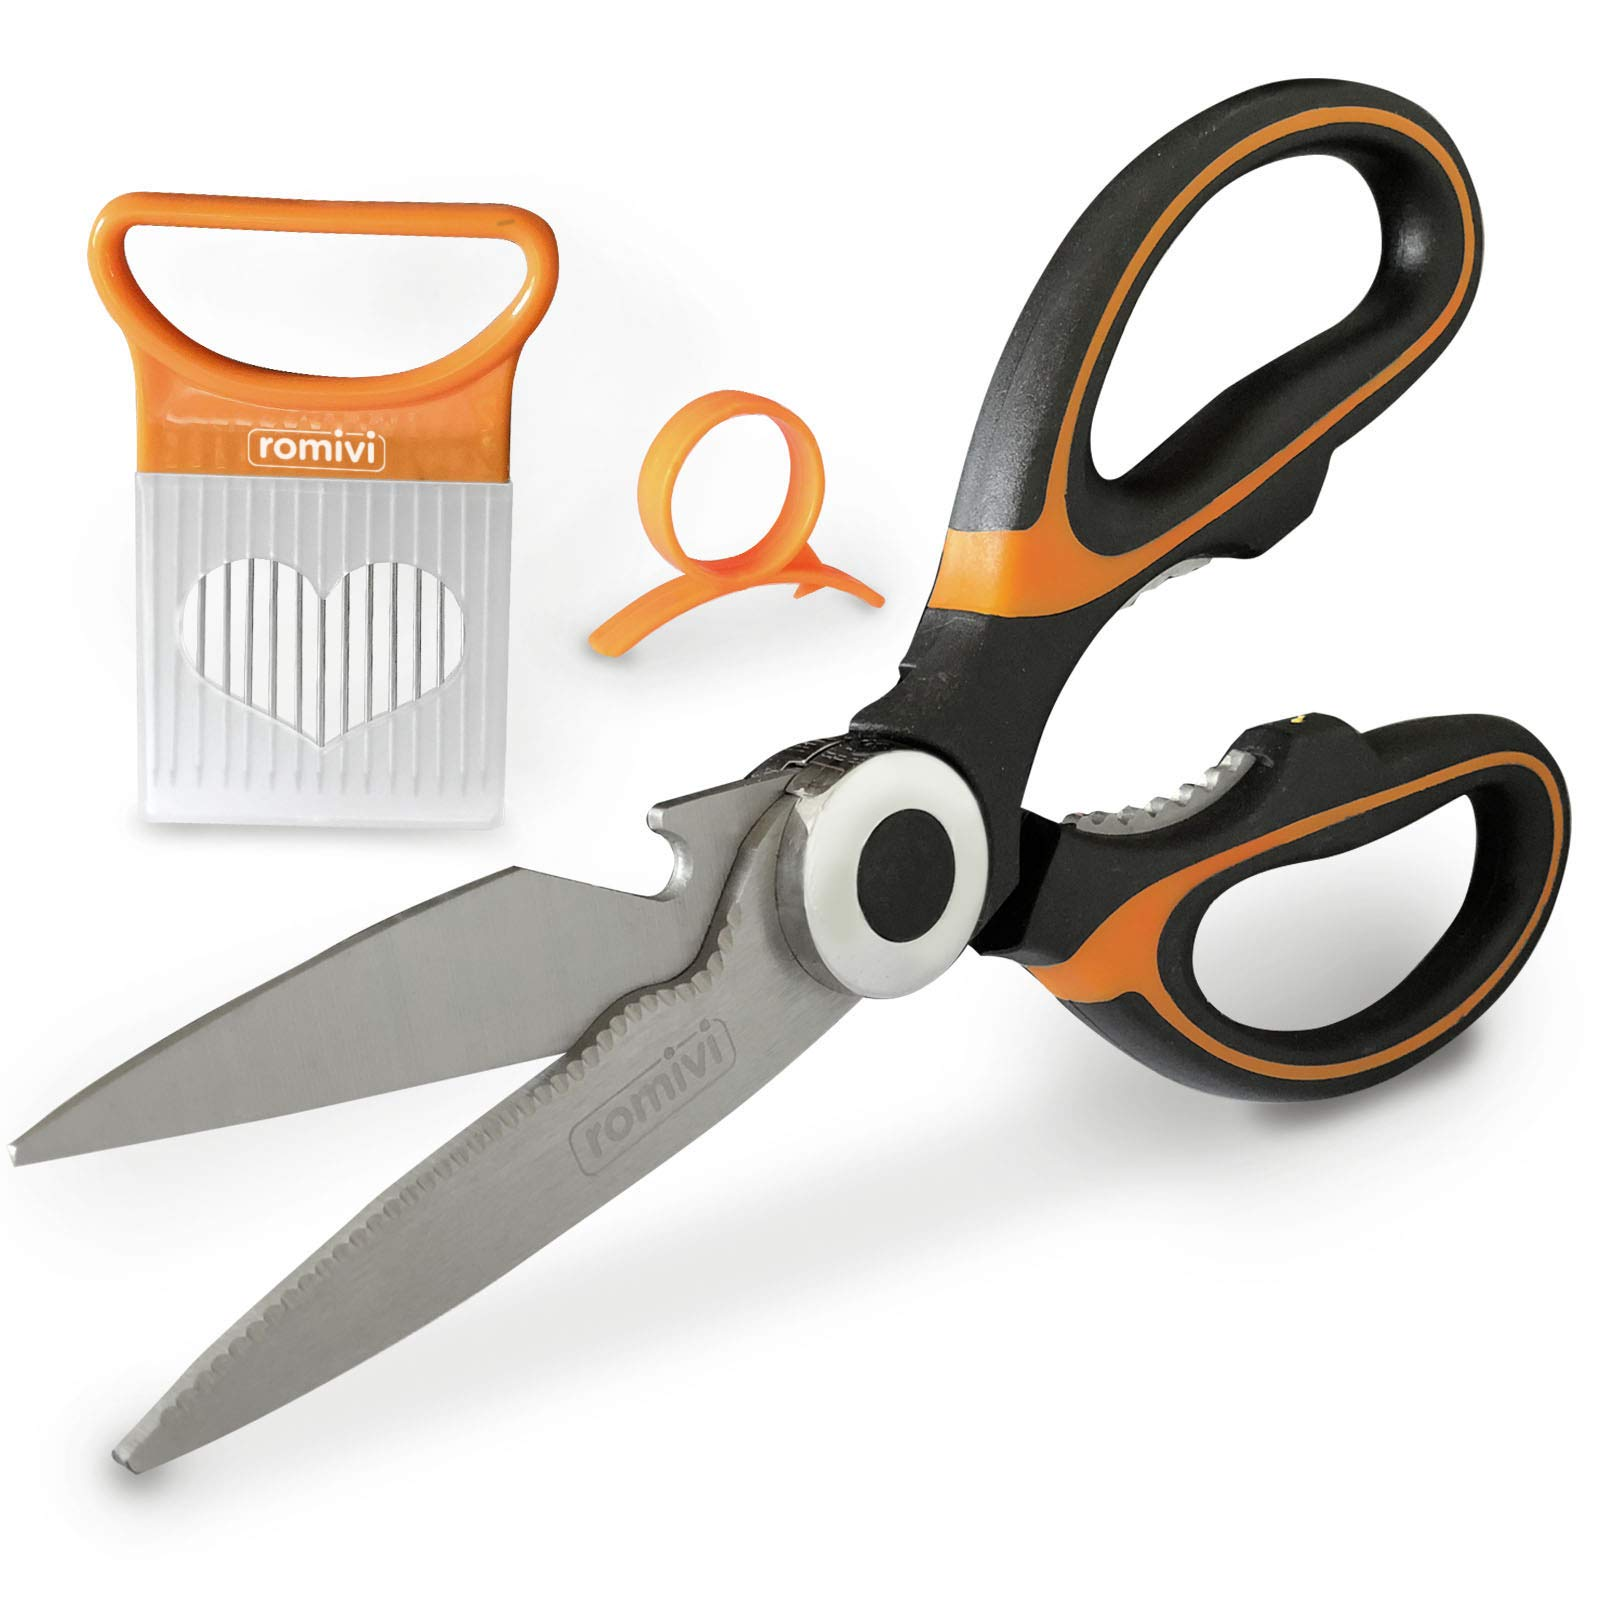 Romivi Kitchen Scissors | High Grade Stainless Steel Kitchen Shears | Multipurpose Heavy Duty Kitchen Utensil Comes with Onion Slicer and Orange Peeler by Romivi (Image #1)